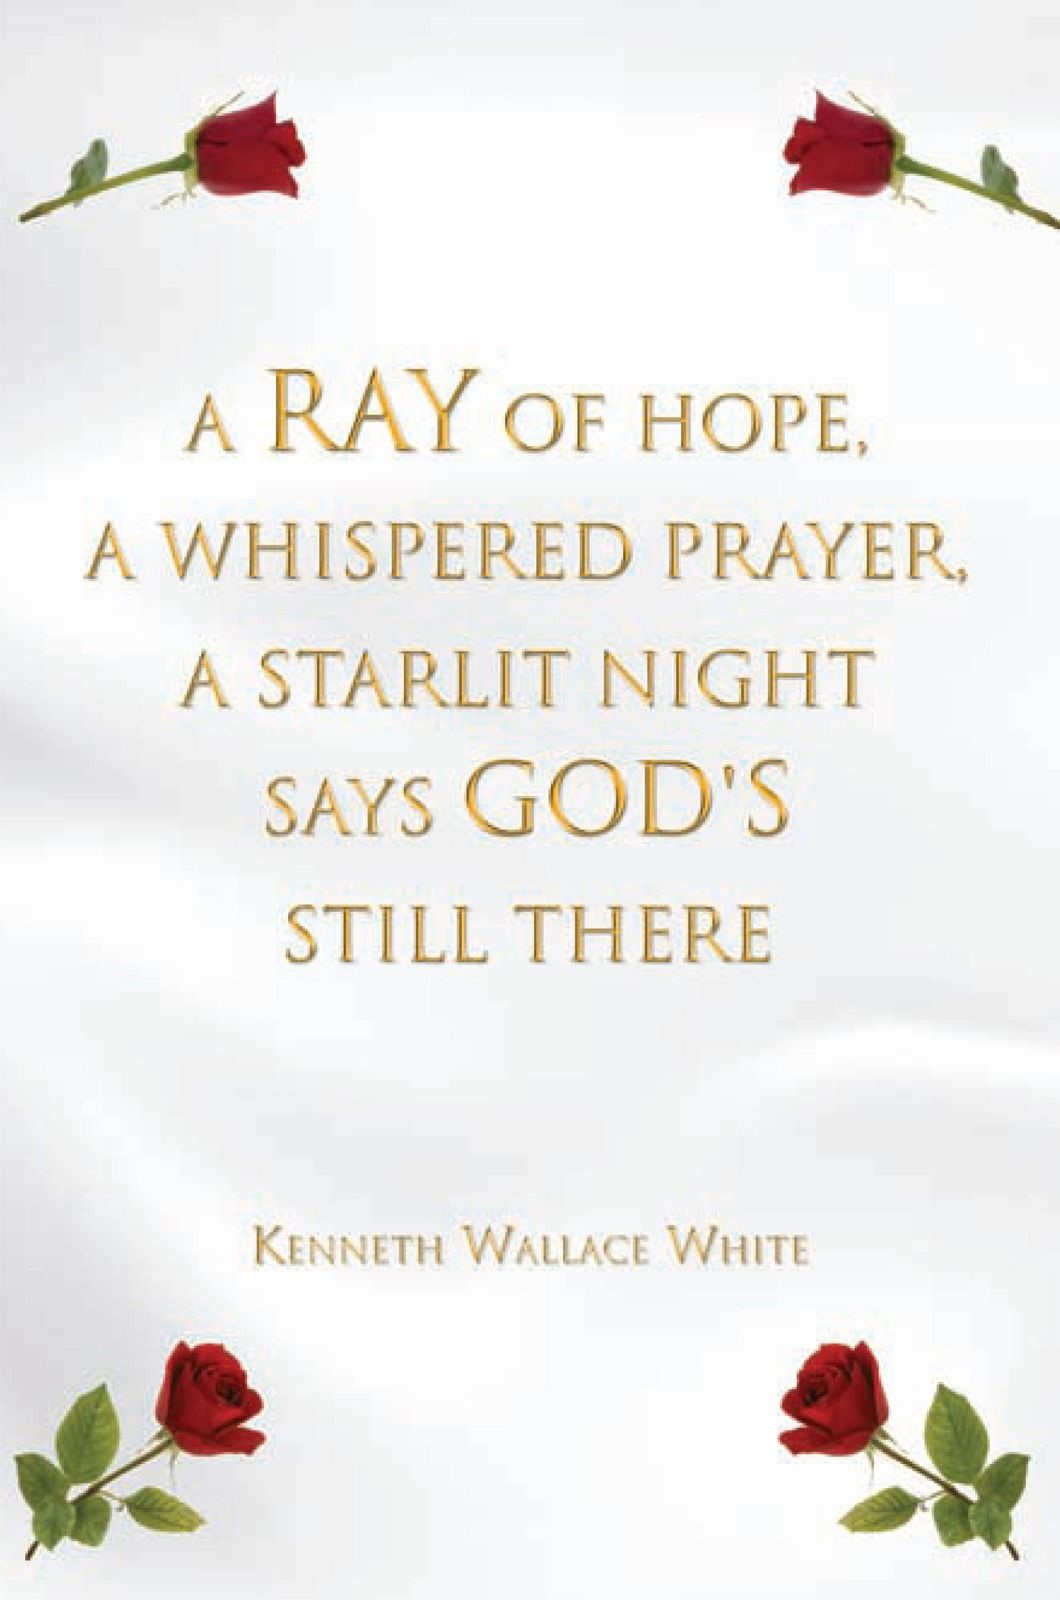 A Ray of Hope, A Whispered Prayer, A Starlit Night Says God's Still There